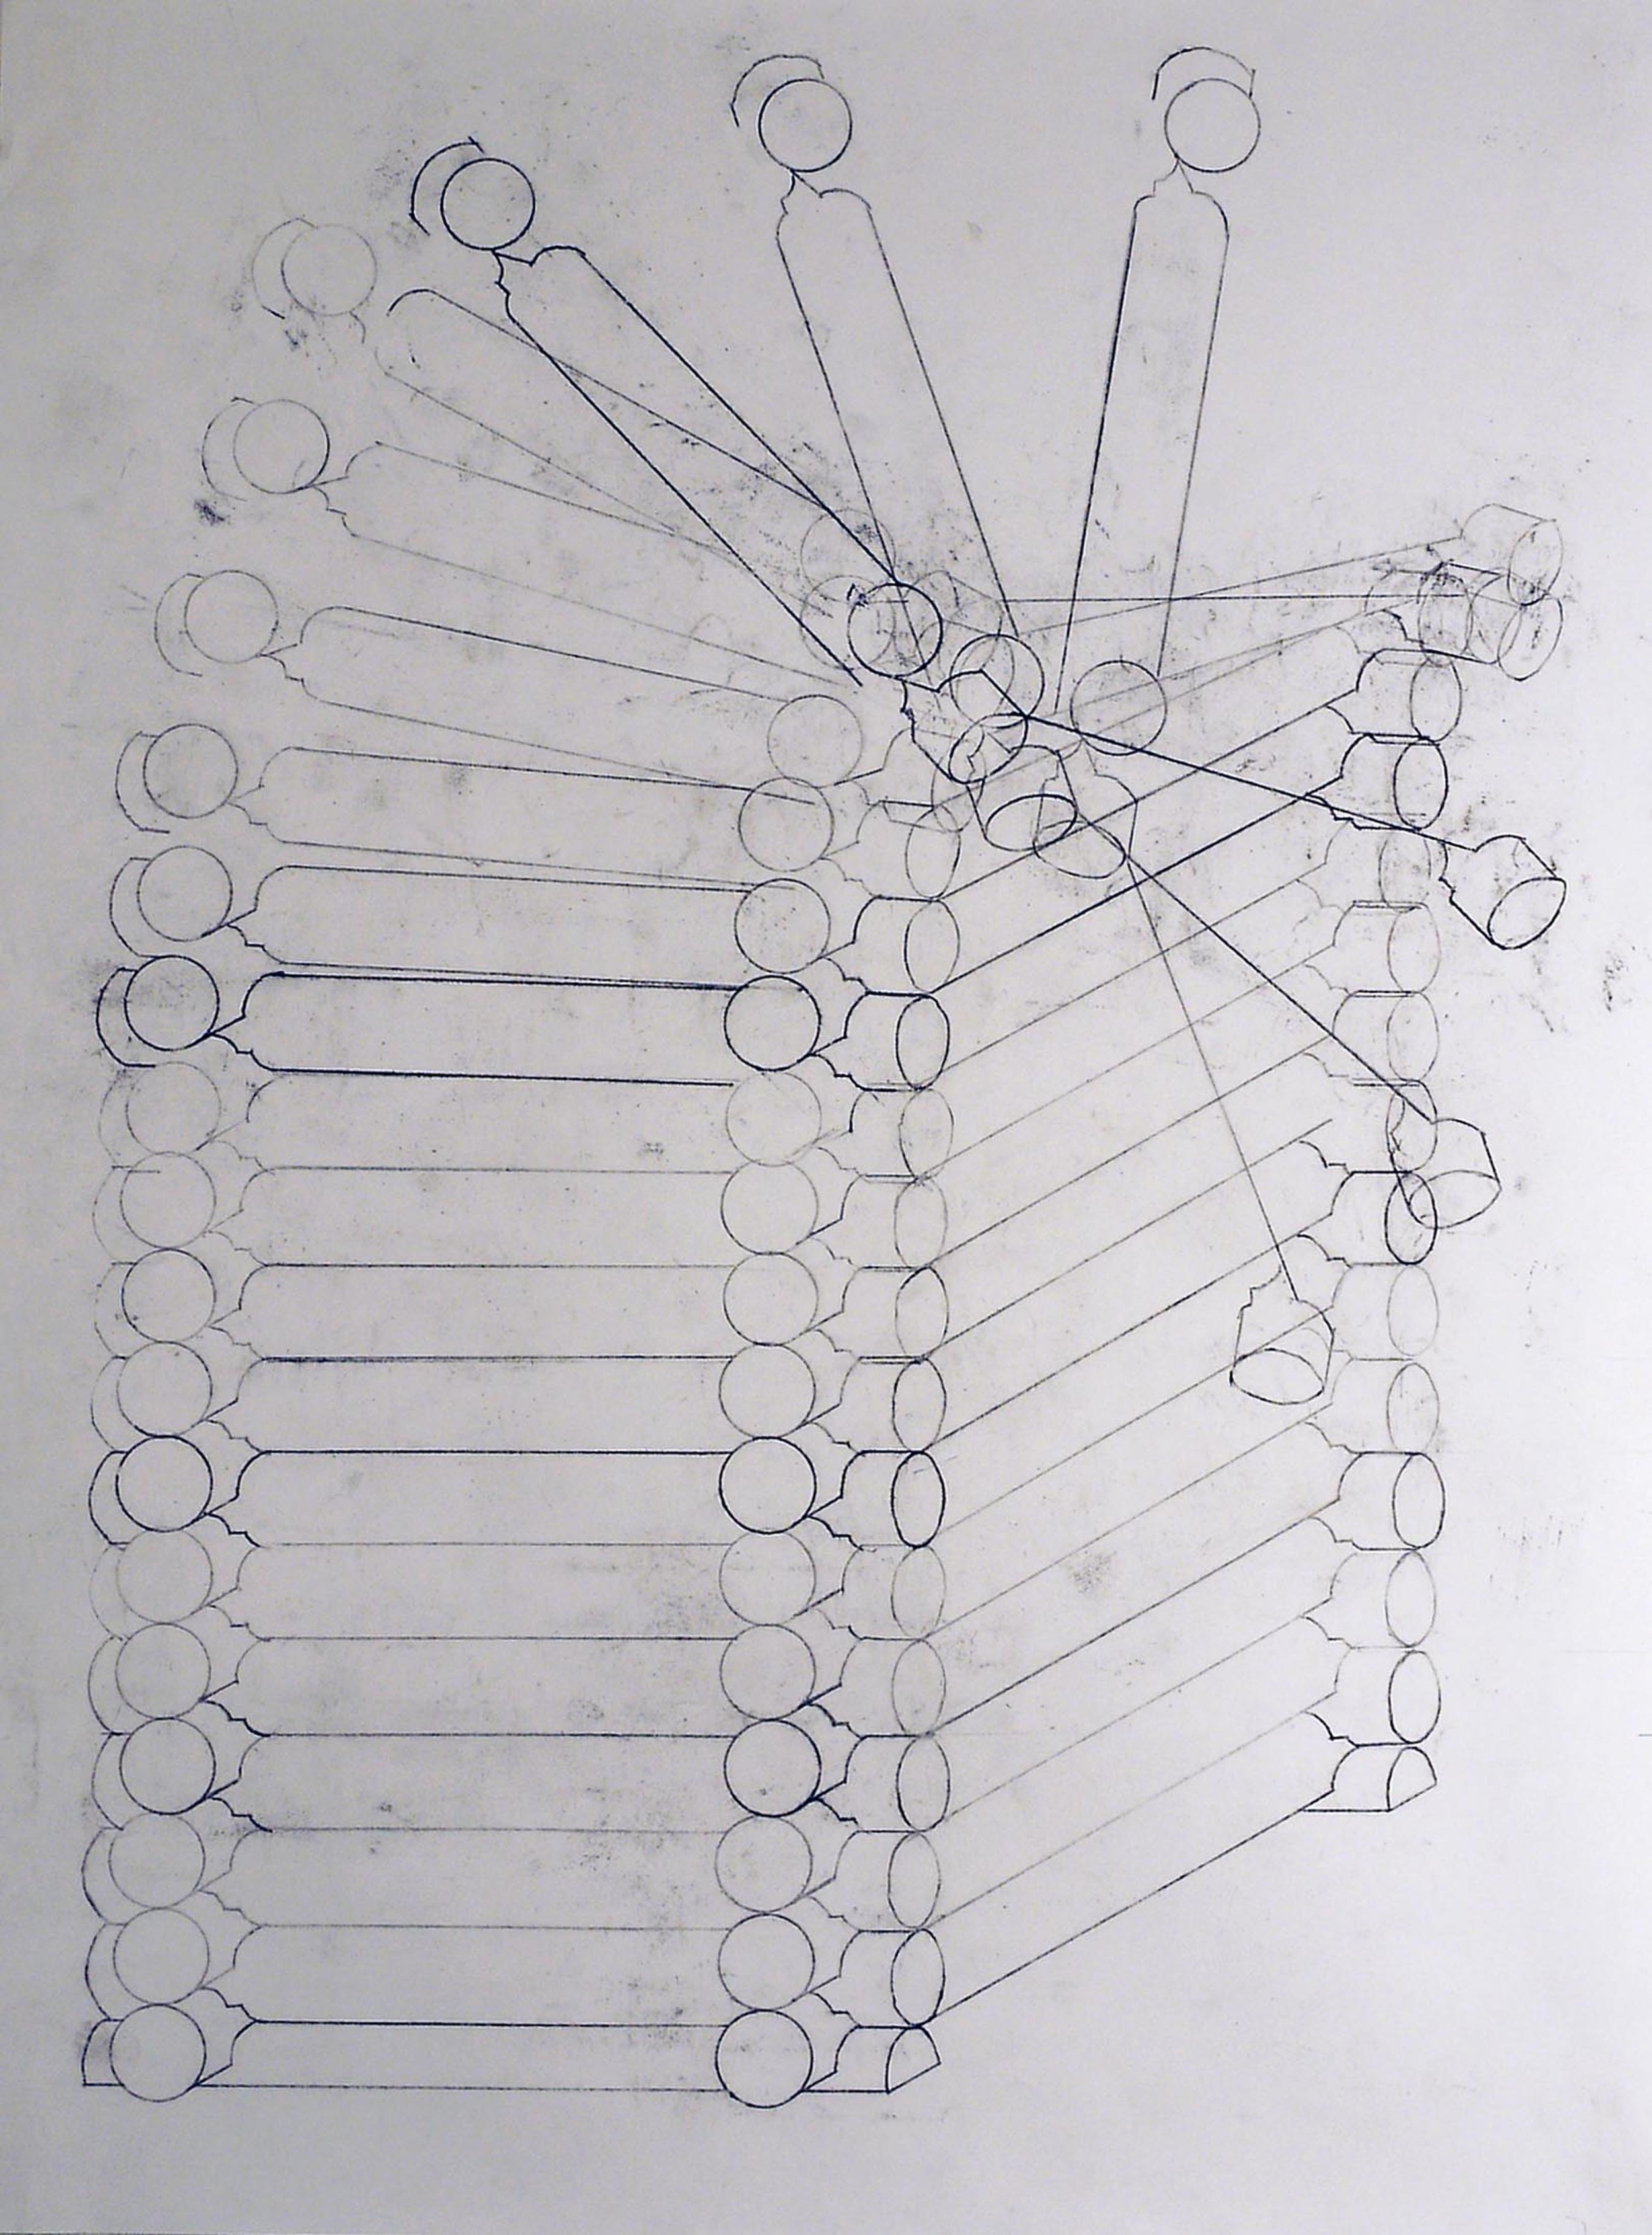 """Falling Tower, 2013, drawing with carbon paper, 18 x 24"""""""